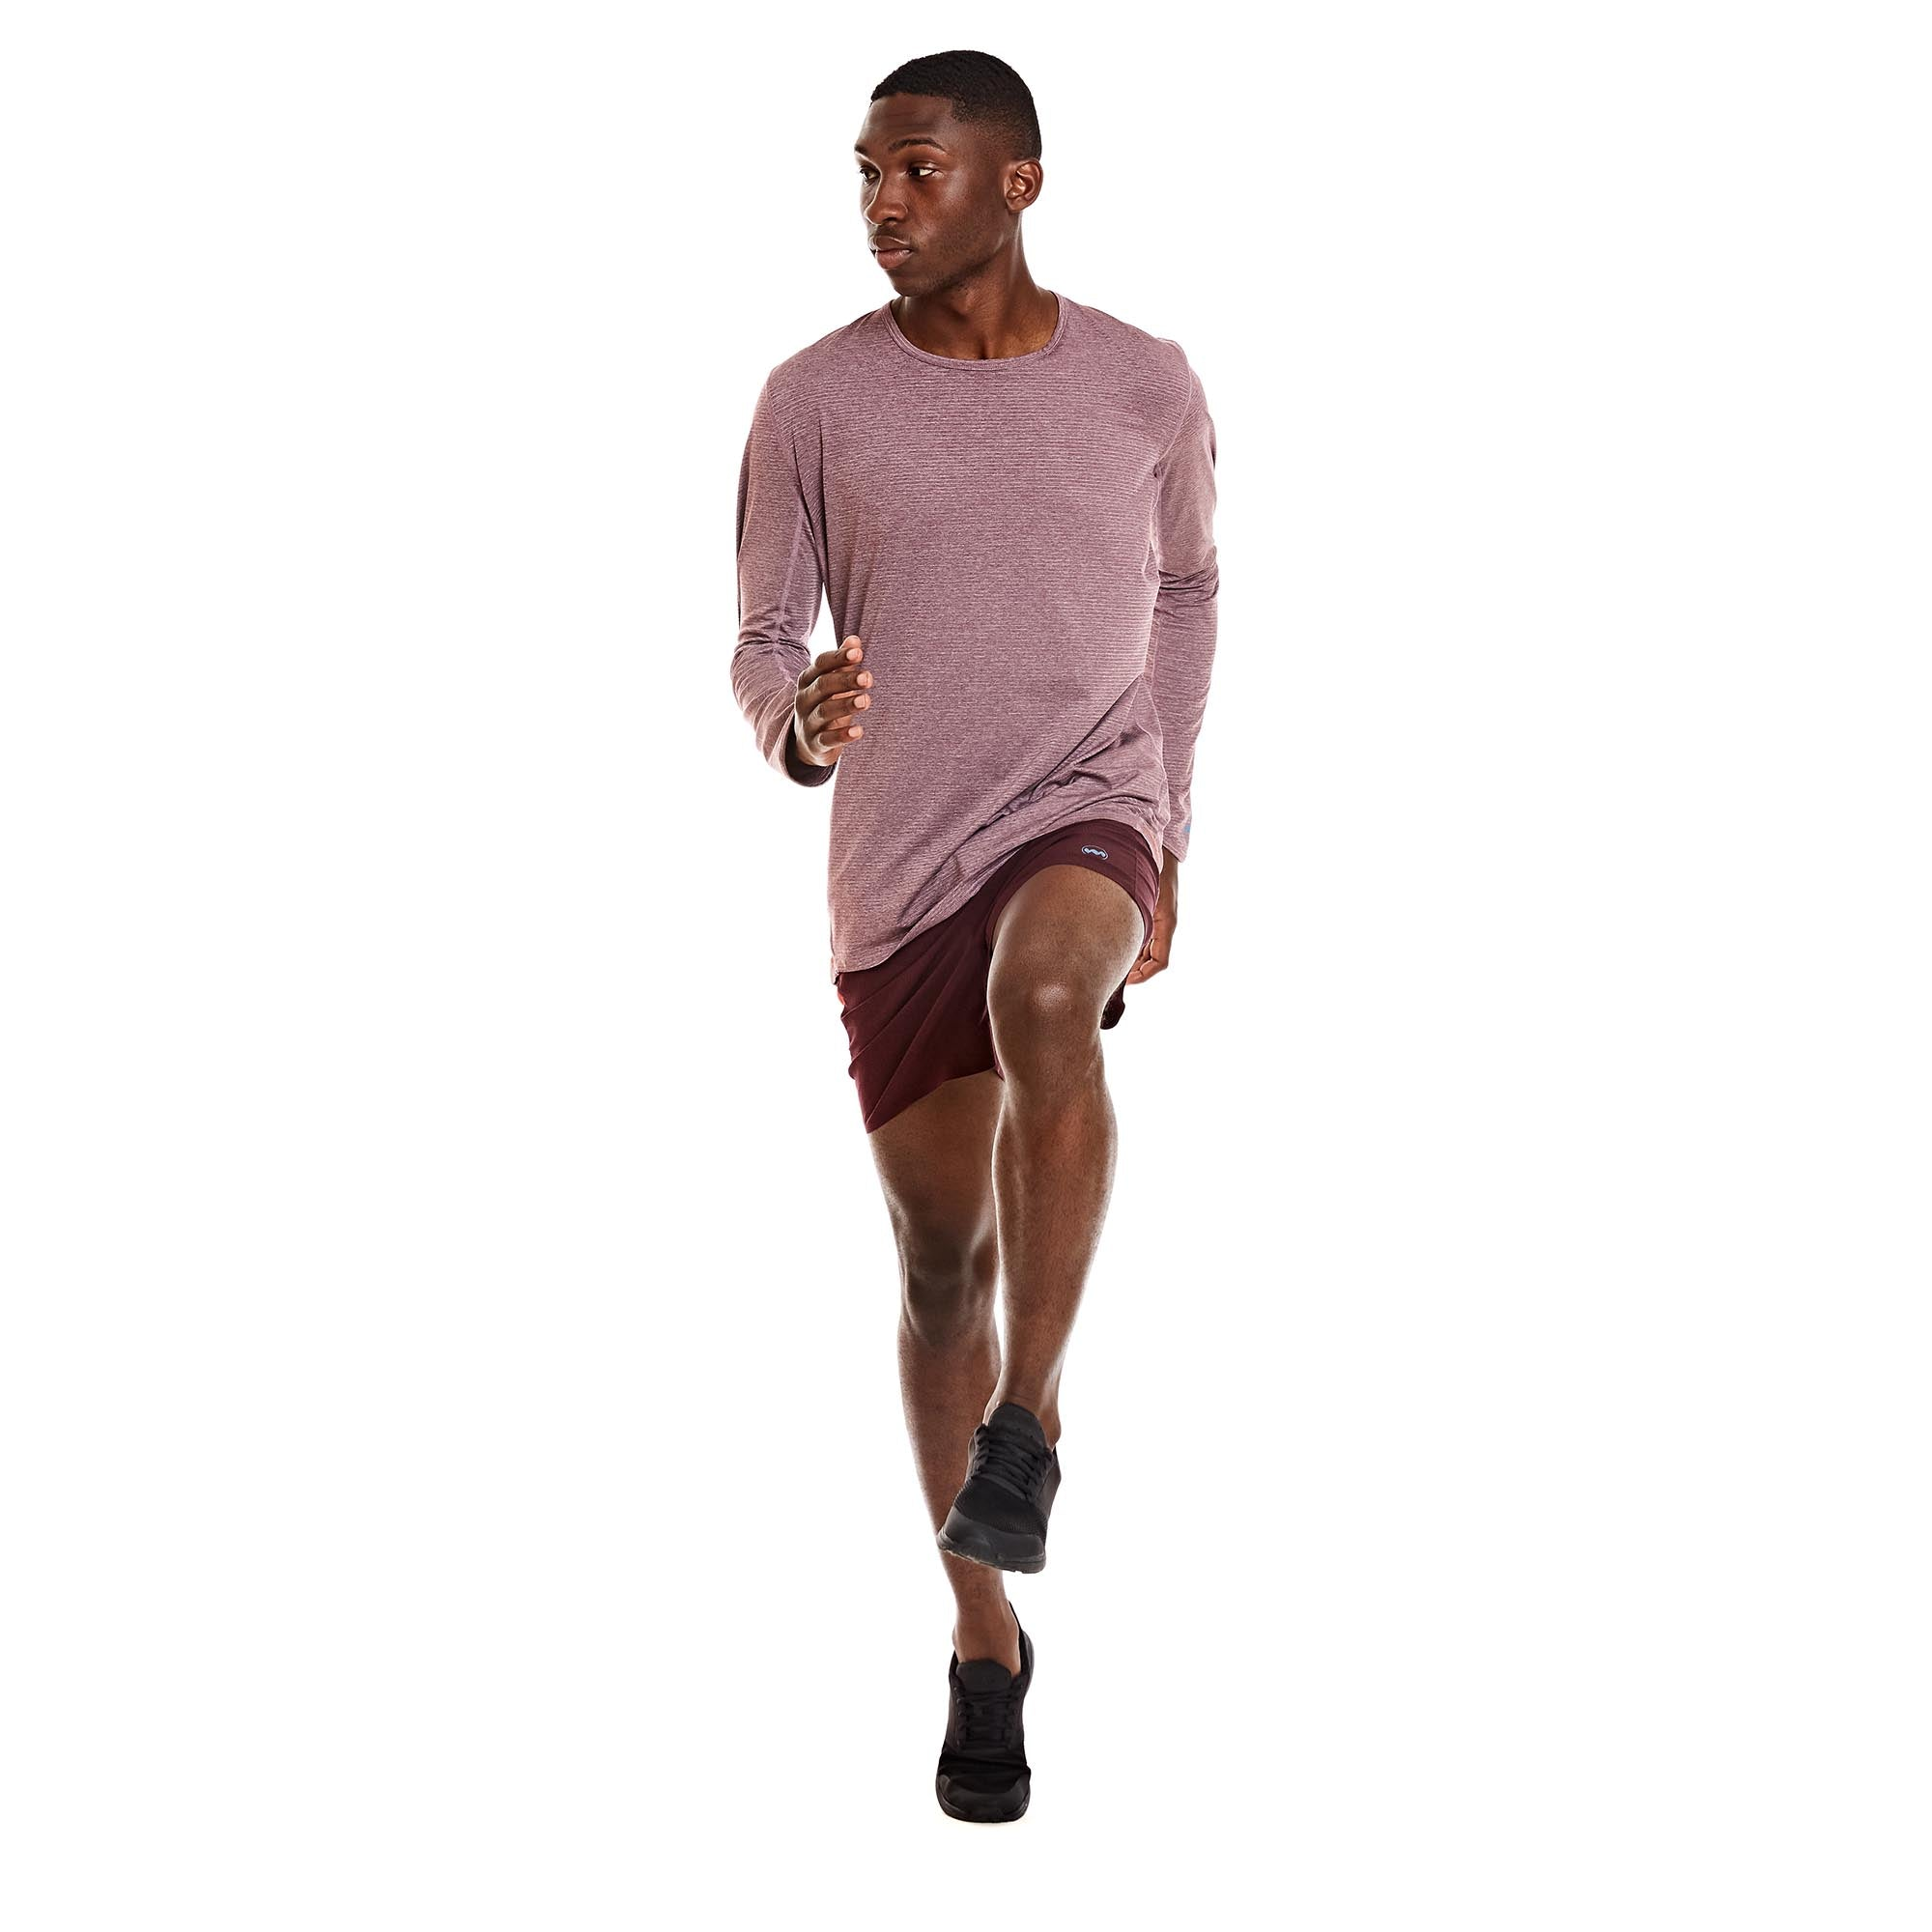 M's Strata Tech Long Sleeve in Sol Morado